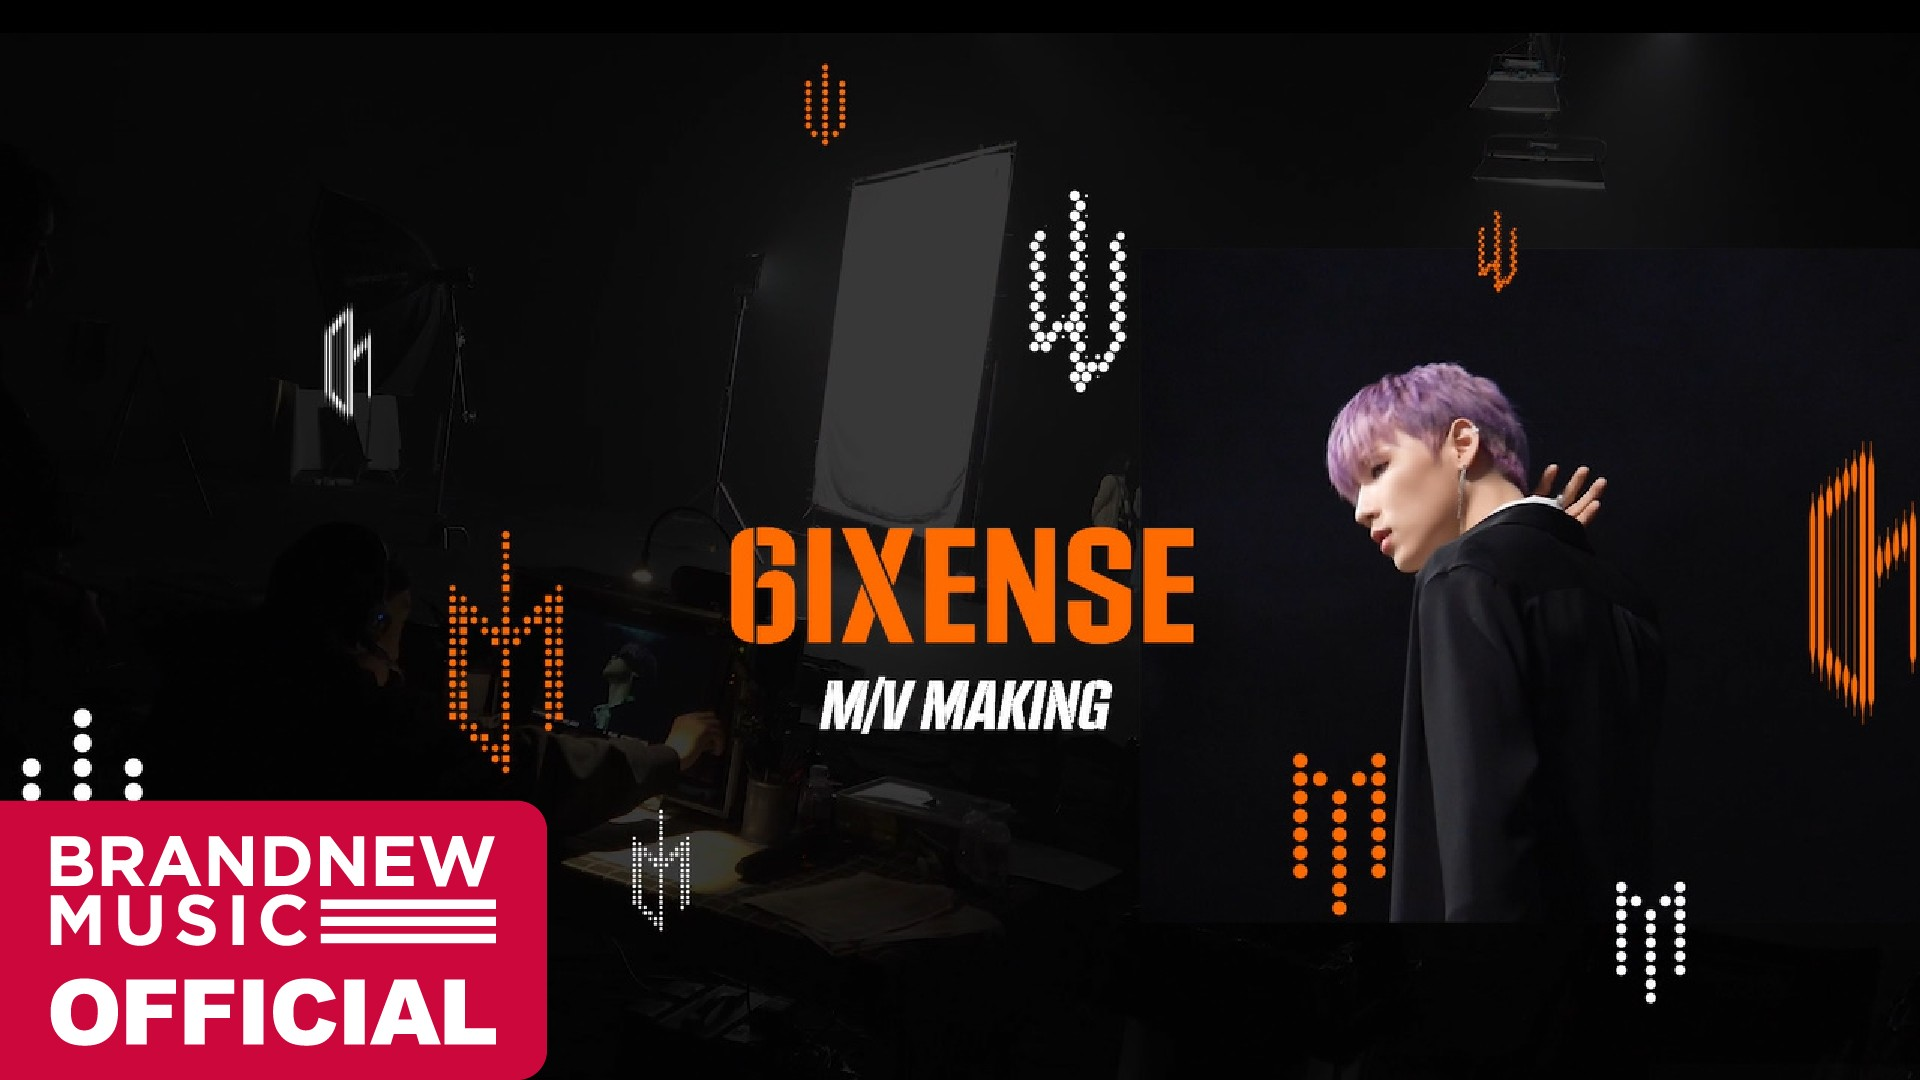 AB6IX (에이비식스) 1ST ALBUM [6IXENSE] M/V MAKING FILM